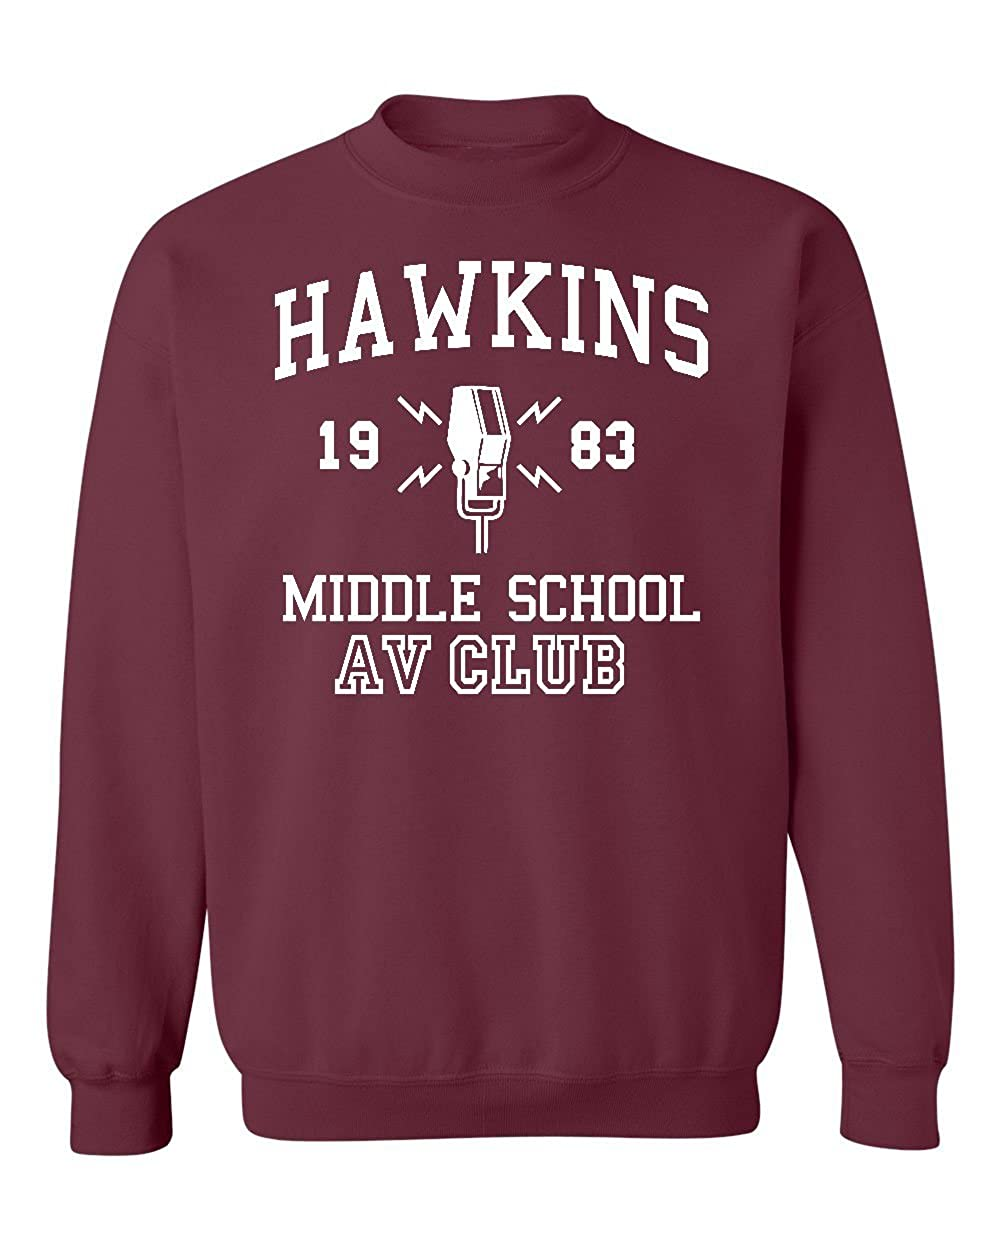 Promotion & Beyond Hawkins Middle School 1983 AV Club Vintage Crewneck Sweatshirt